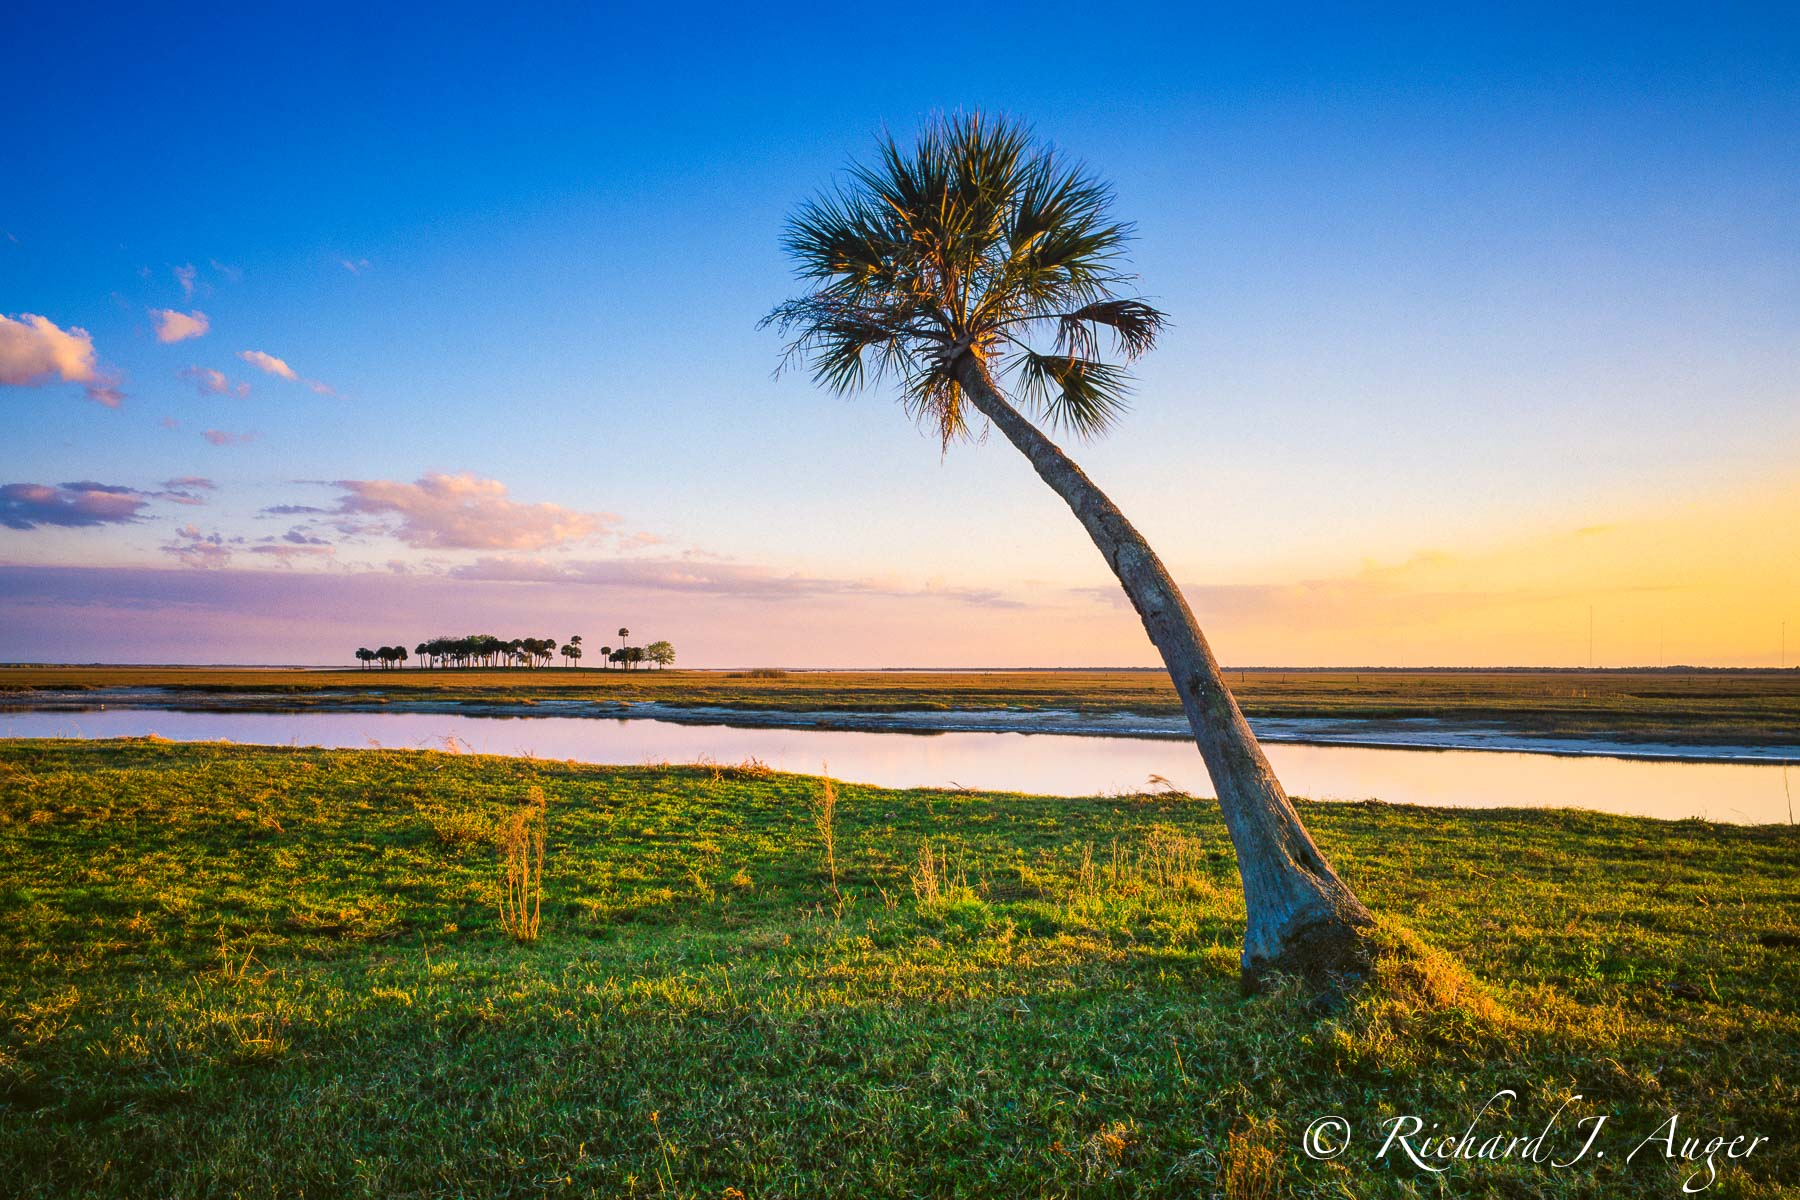 St Johns River, Central Florida, palm tree, evening, sunset, calm, landscape, canvas